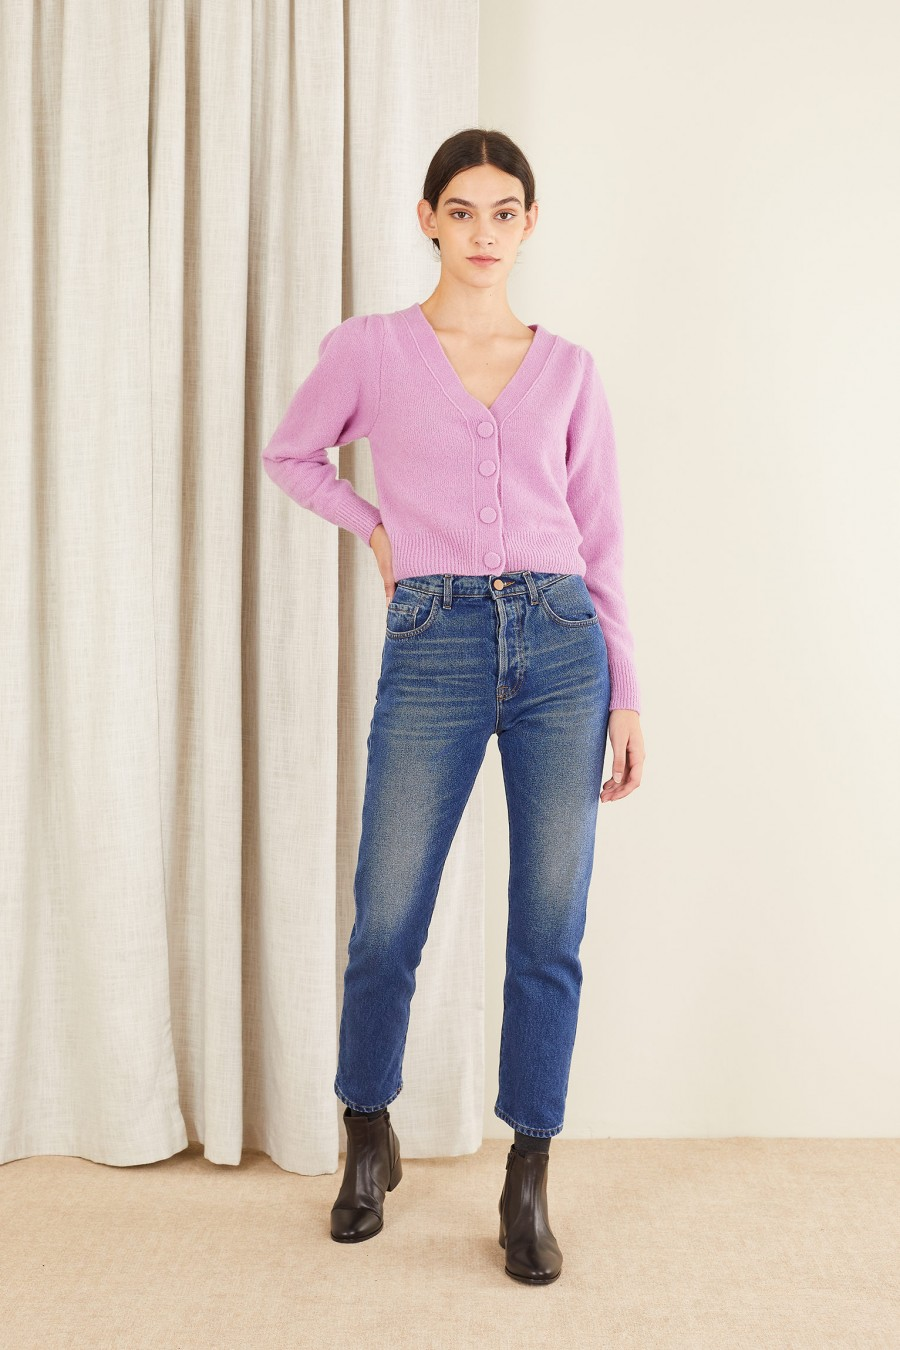 V-neck sweater with covered buttons